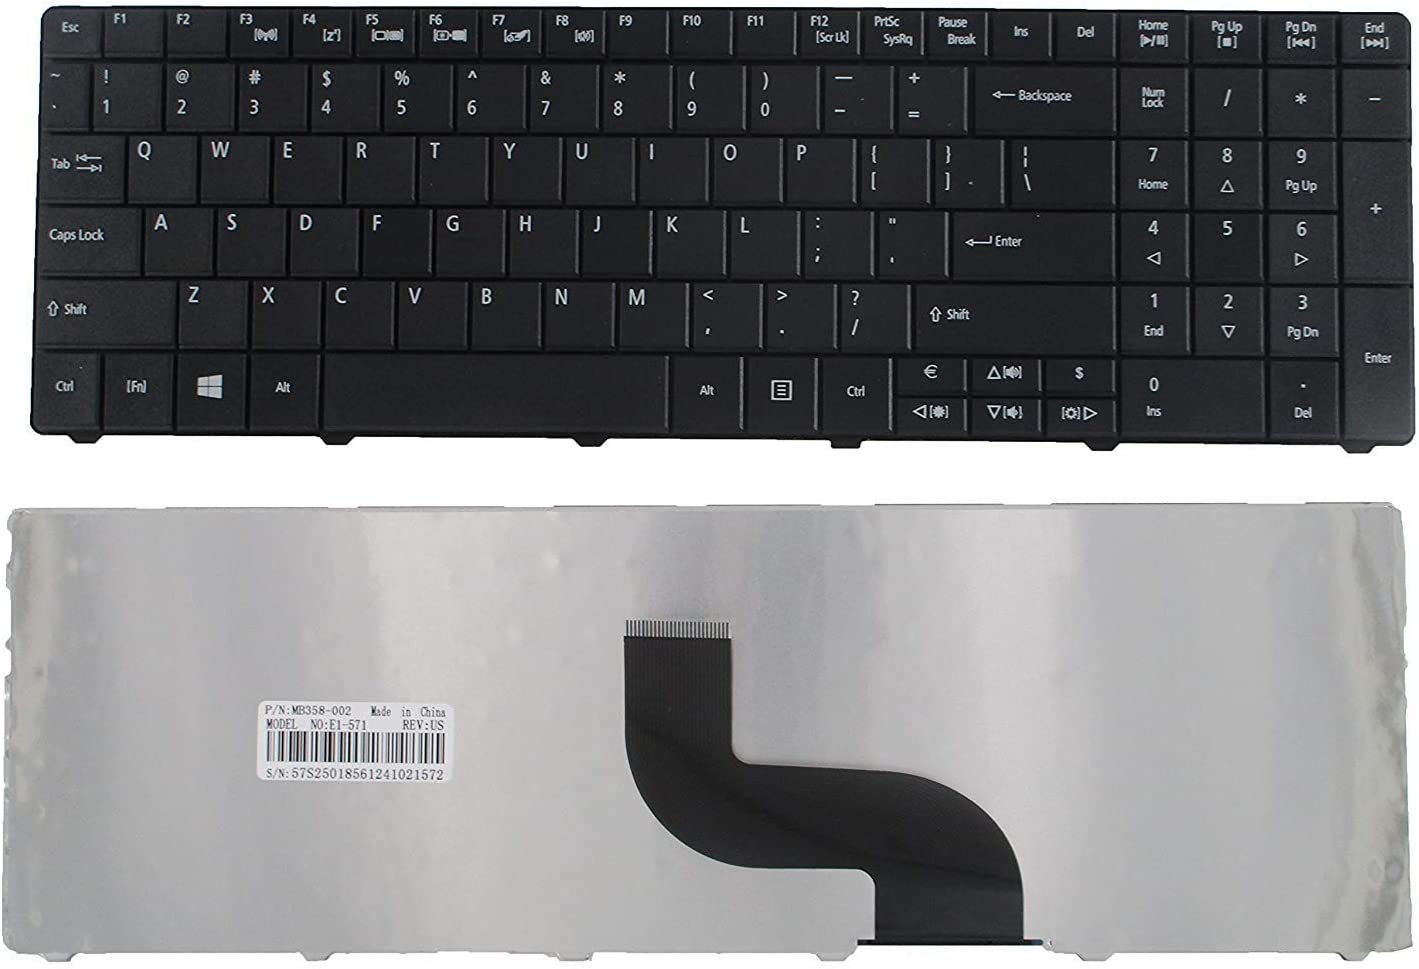 Keyboard Replacement for Acer Aspire E1-521 E1-531 E1-531G E1-571 E1-571G Travelmate P253-E P253-M 8571 8531 8751G 8572 5742Z 5744 5744Z Series Laptop Black US Layout